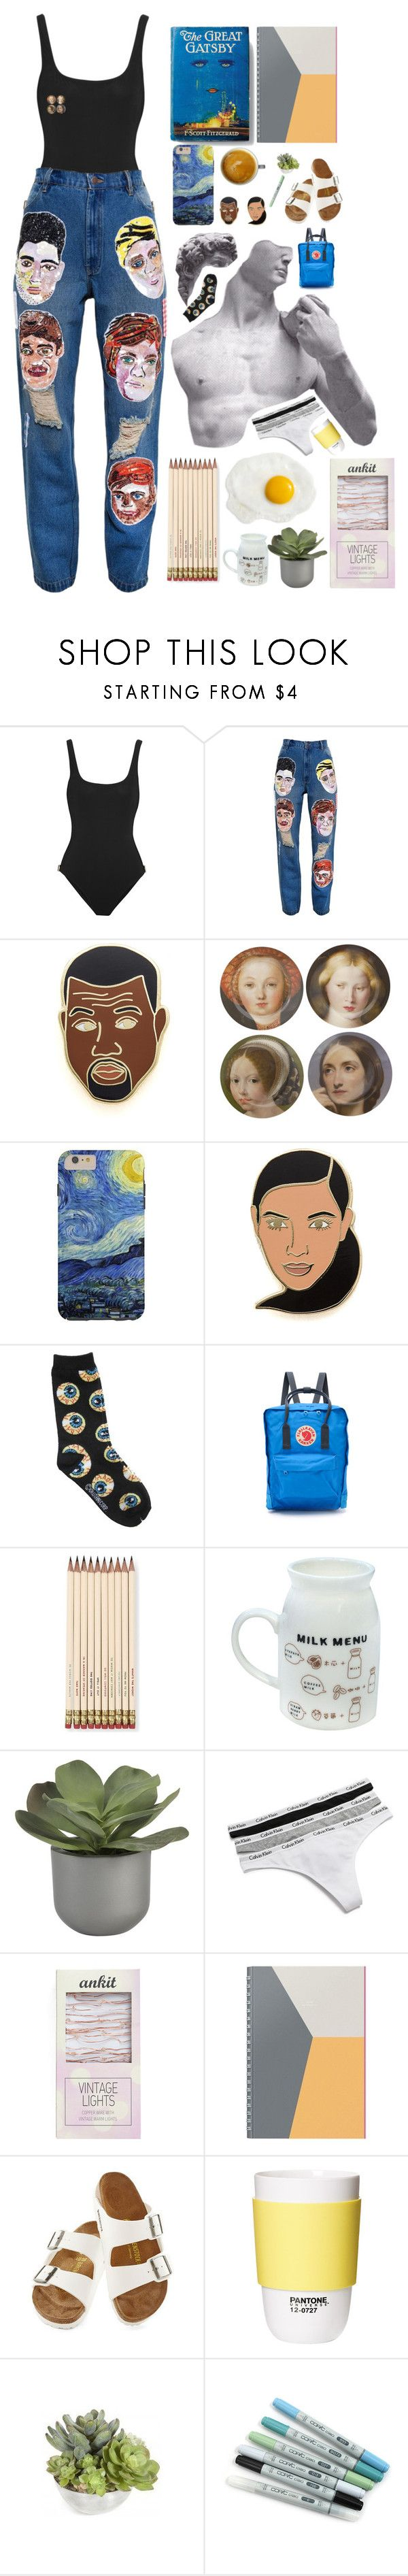 """""""cover"""" by helooksoperfc ❤ liked on Polyvore featuring Orlebar Brown, Ashish, Georgia Perry, Fjällräven, Kate Spade, Crate and Barrel, Calvin Klein Underwear, Streamline NYC, russell+hazel and Birkenstock"""